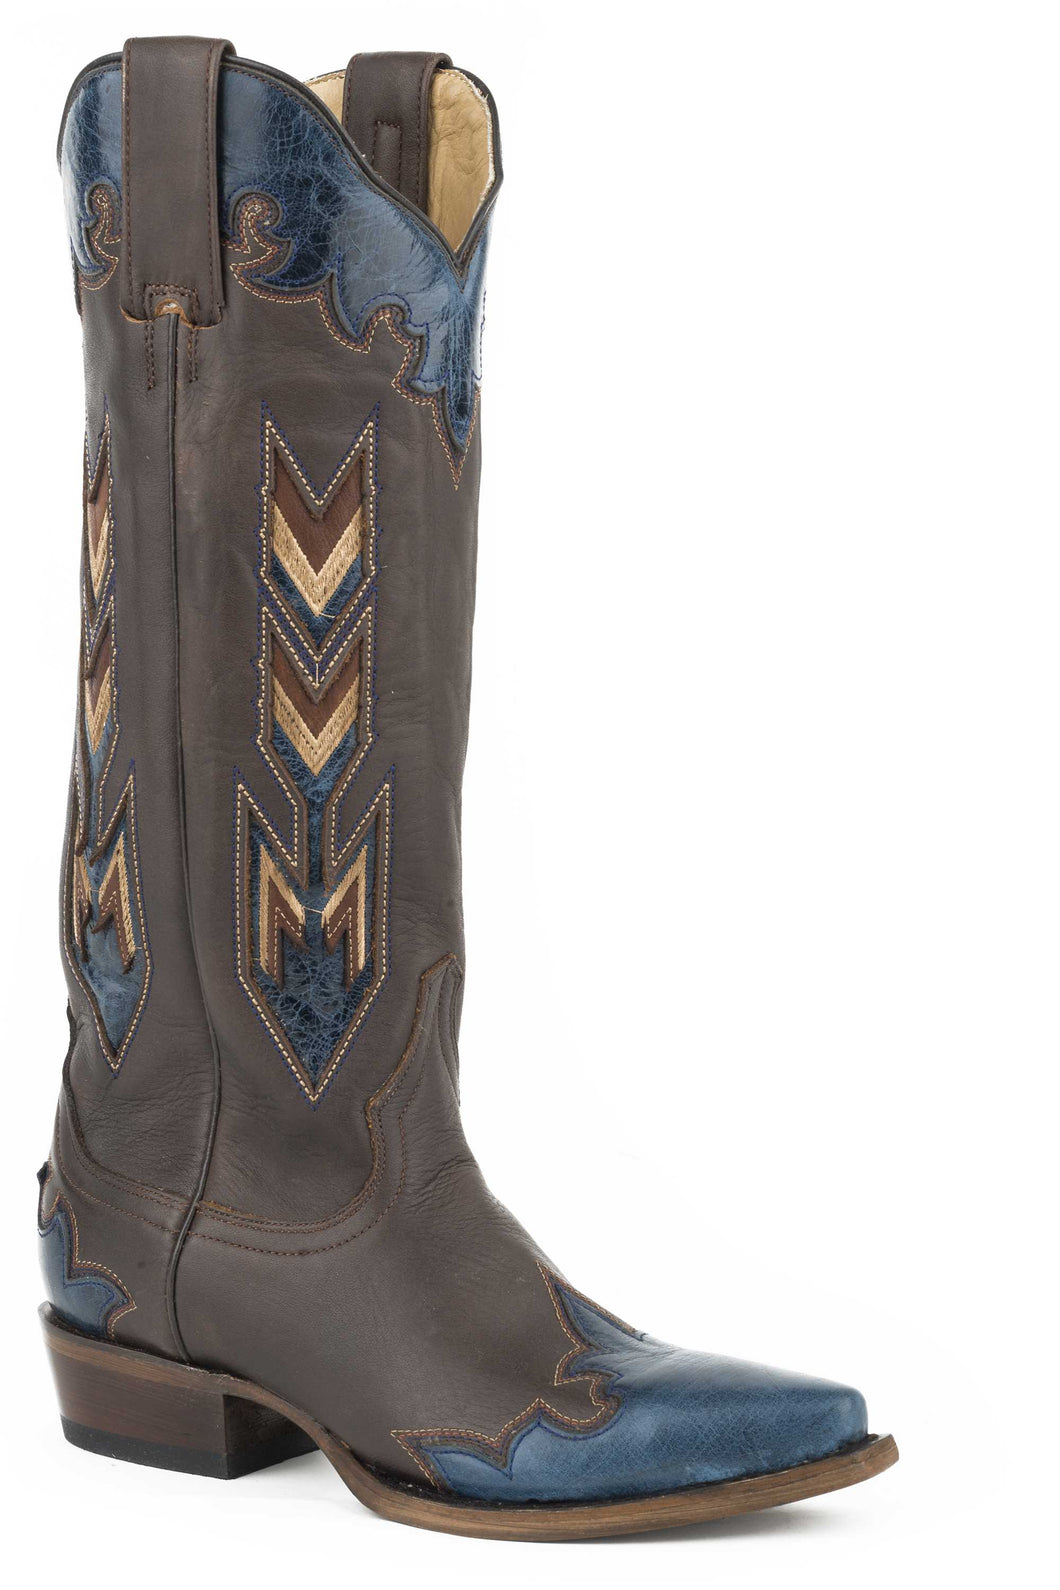 Vida Boot Womens Boots Brown Vamp And 15